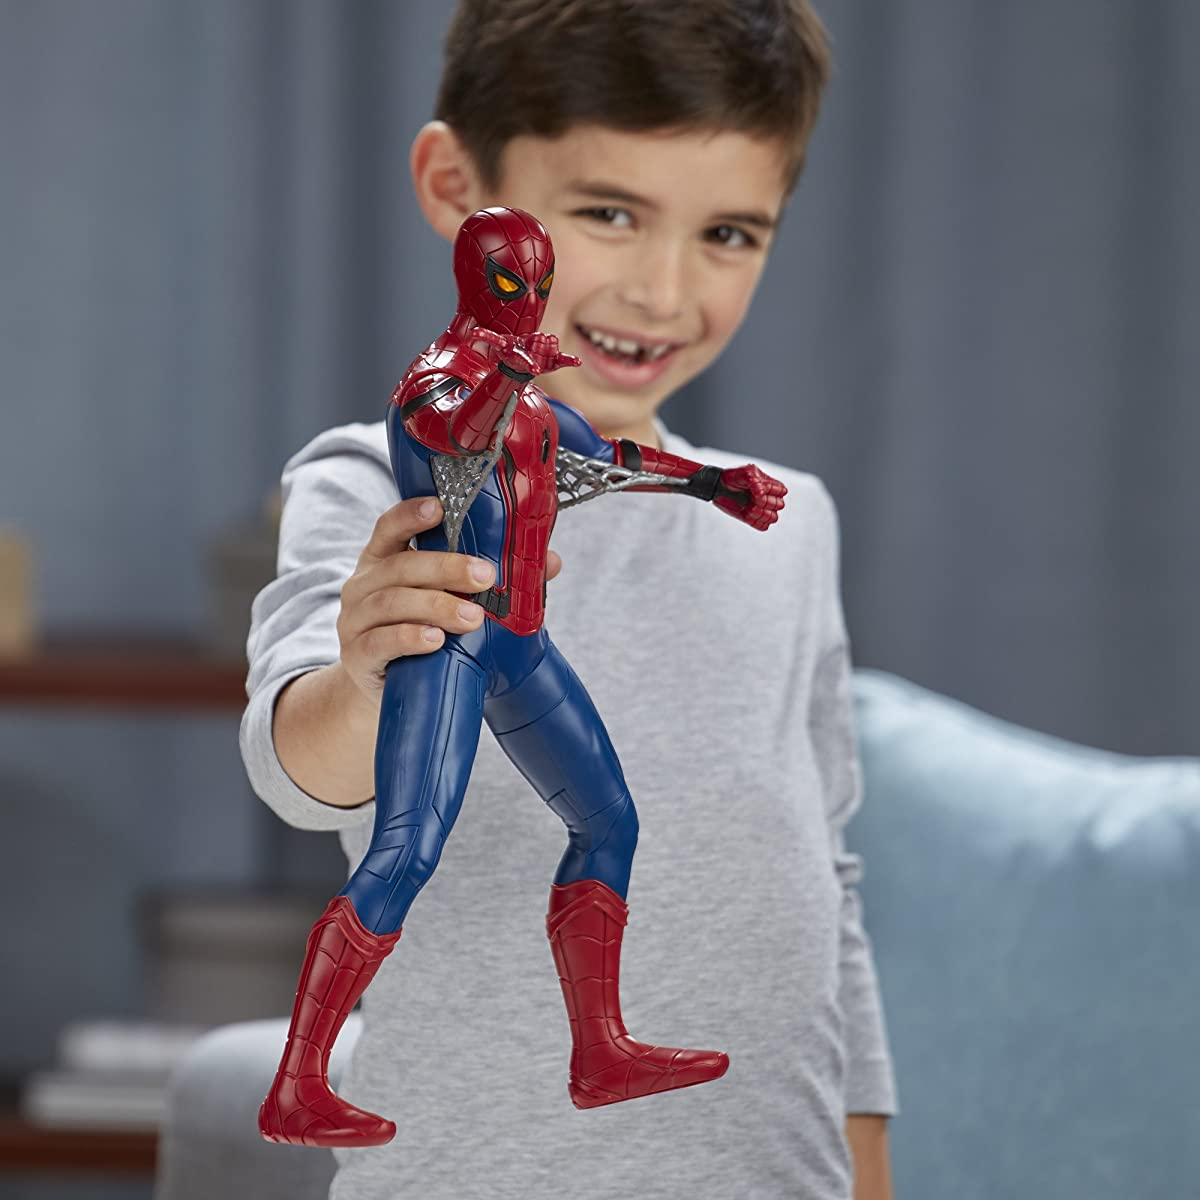 Spider-Man: Homecoming Tech Suit, 15 inches